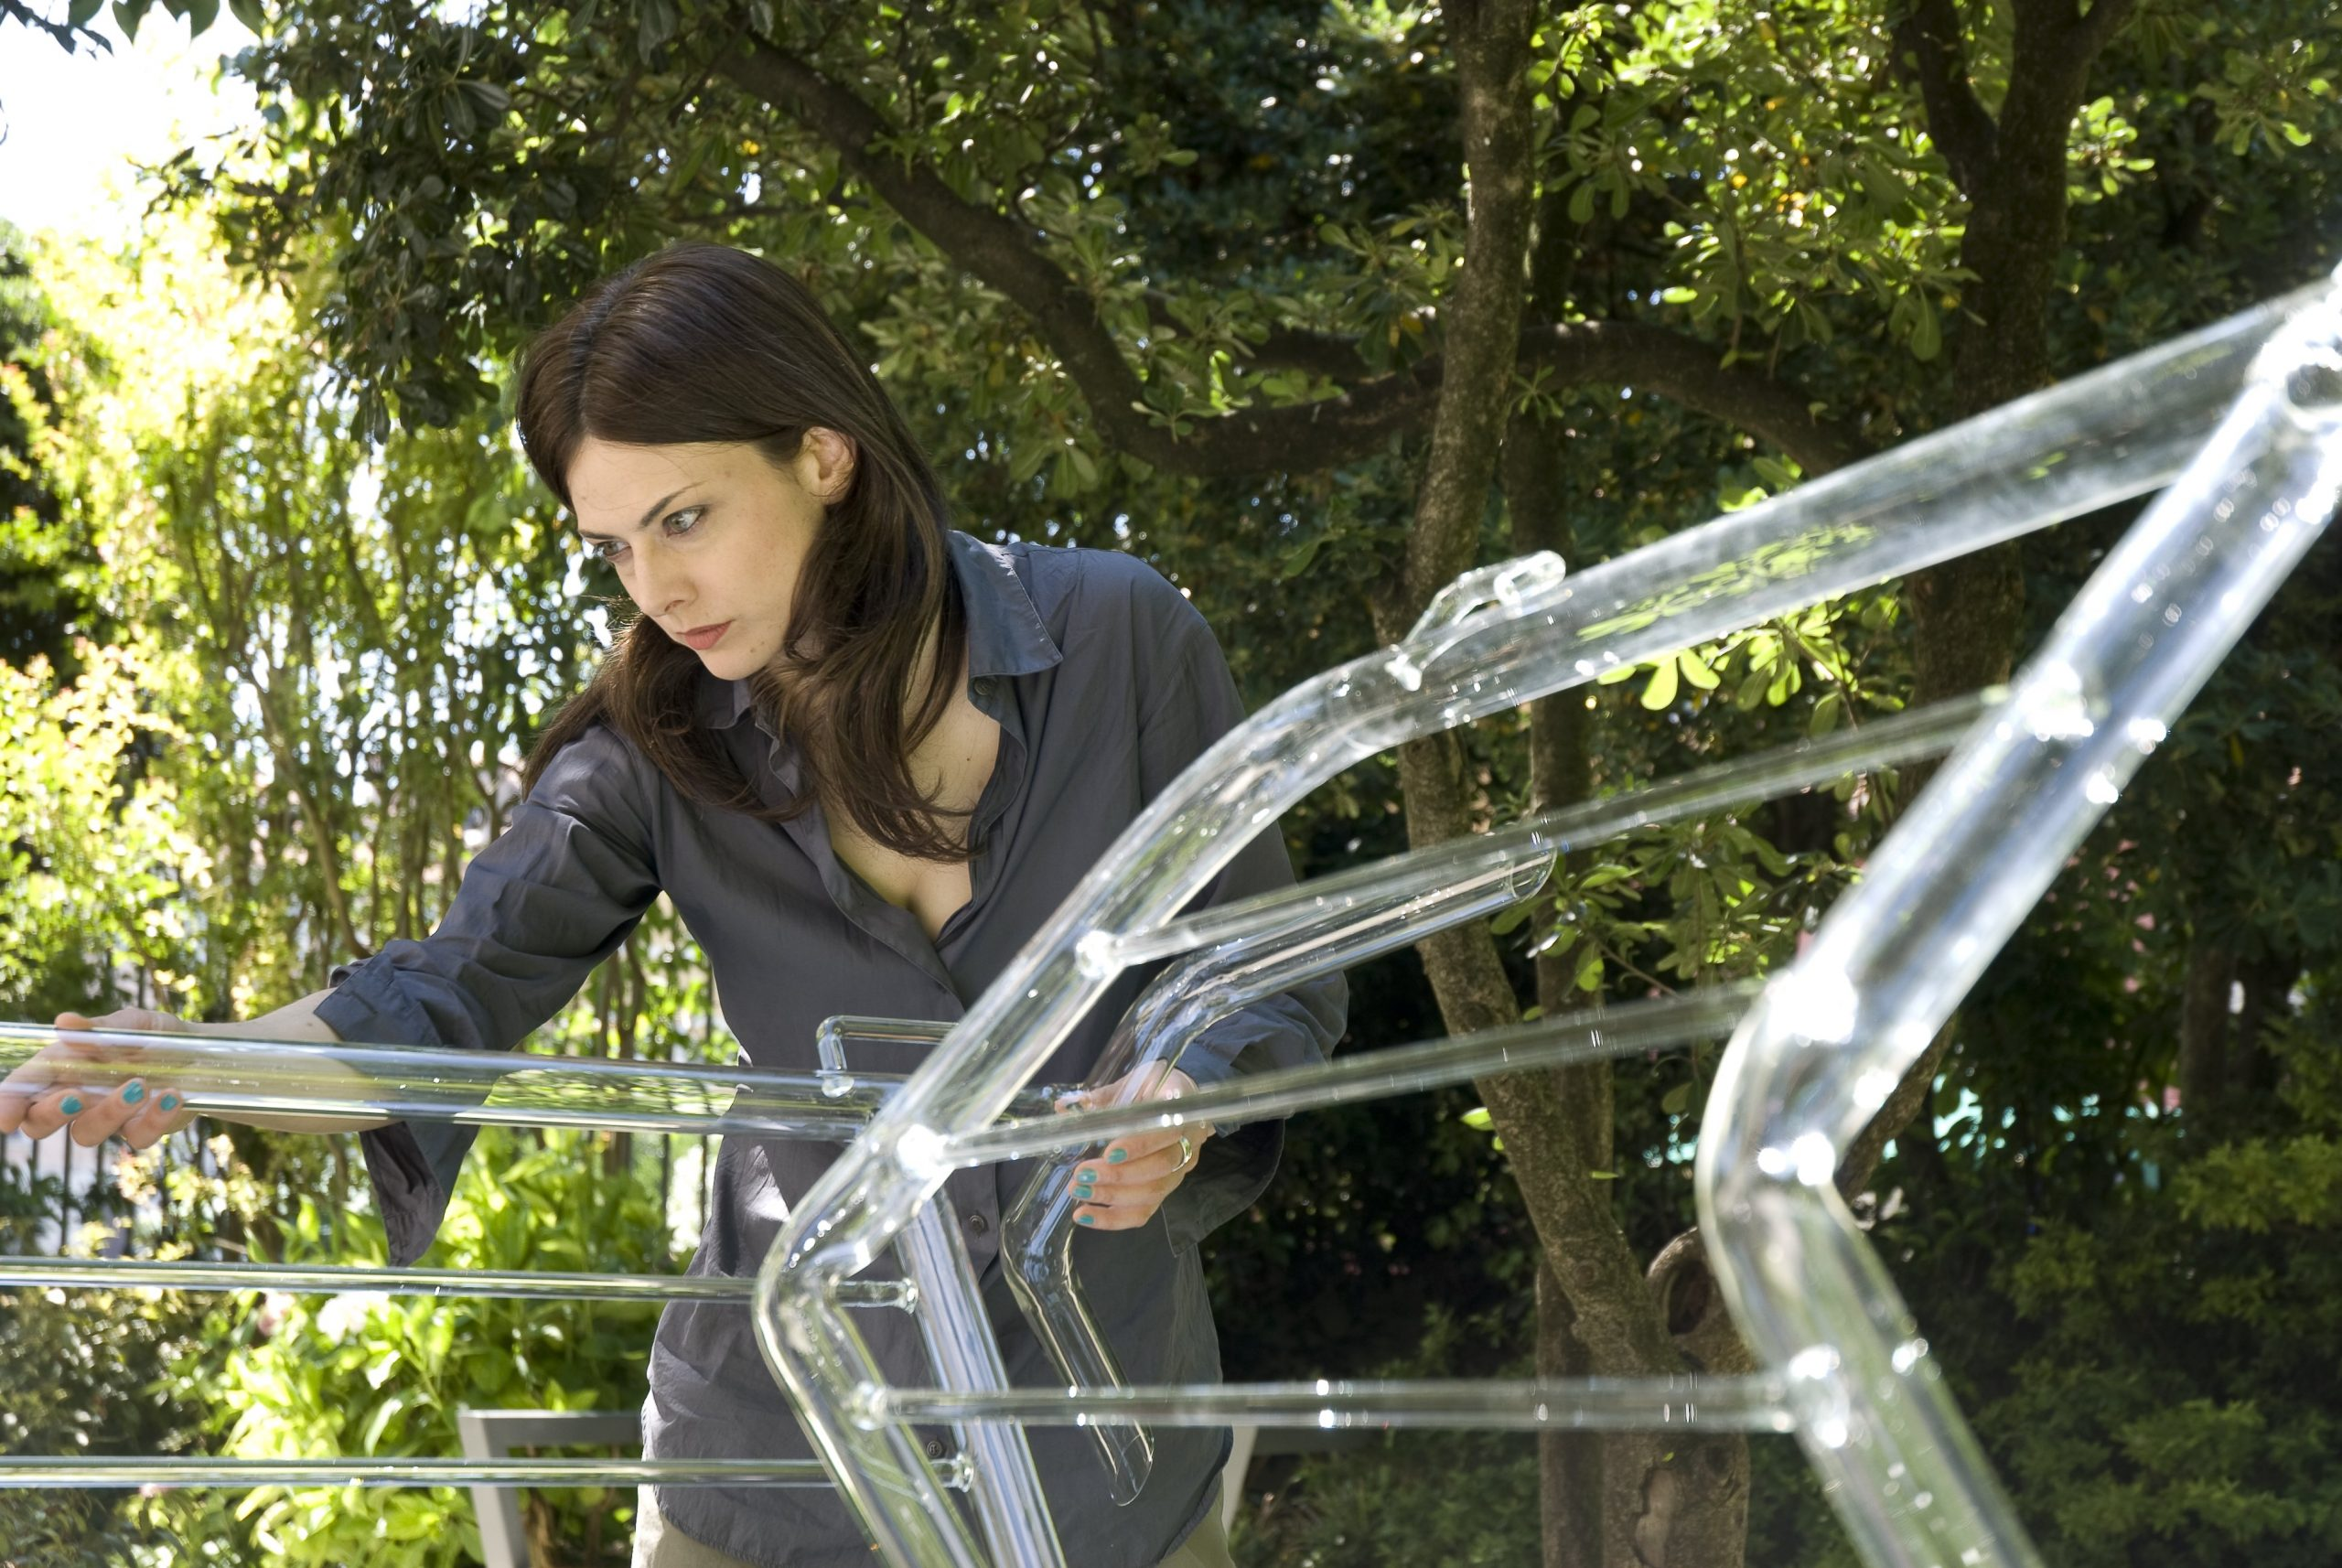 Bettina Pousttchi installing her work at Glasstress 2009